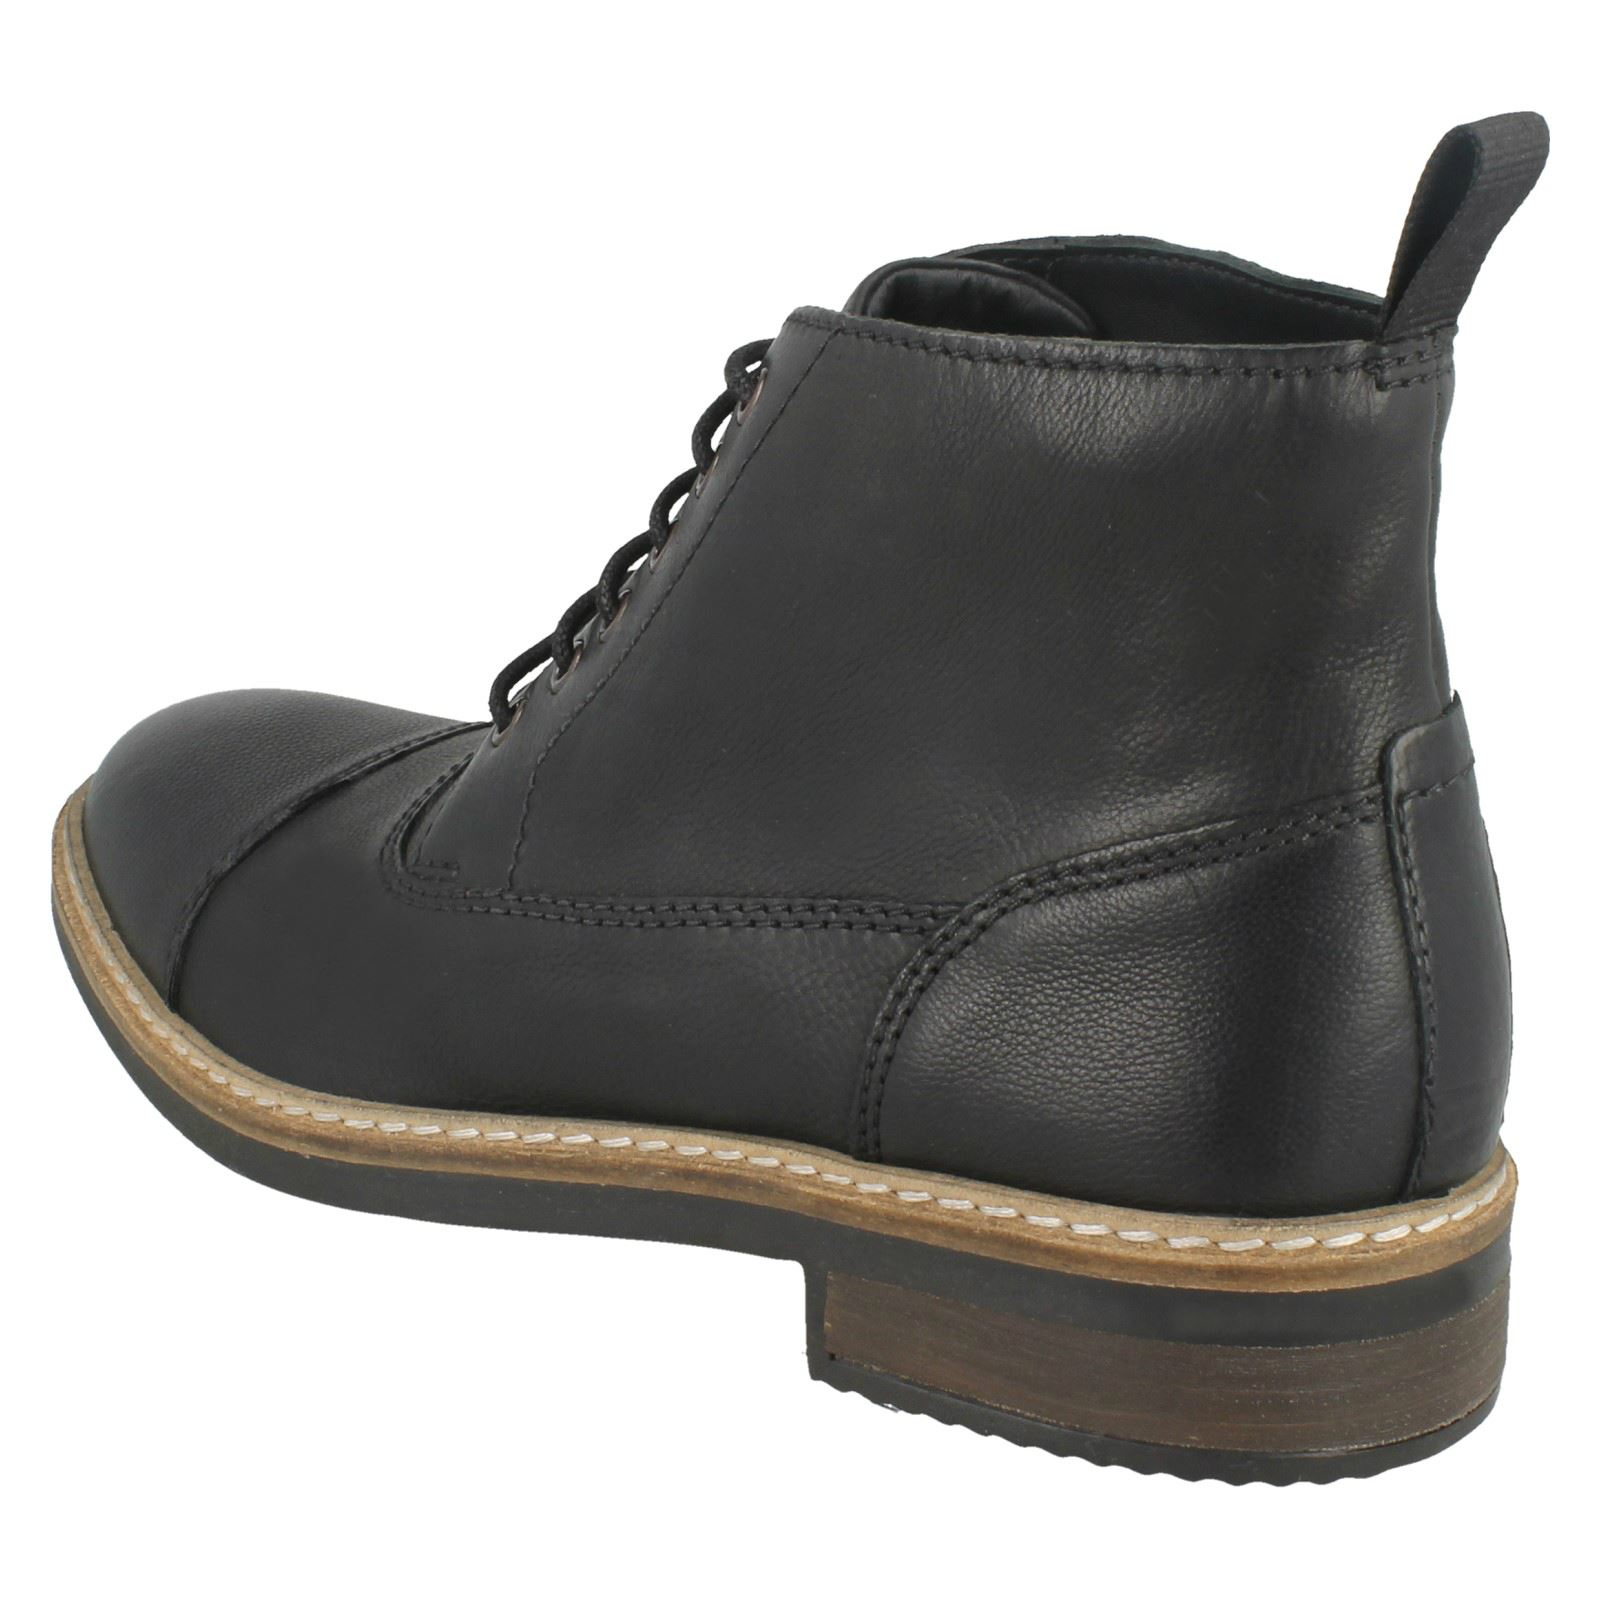 Clarks Cap' Black Ankle 'blackford Smart Mens Boots d1wnWpXx